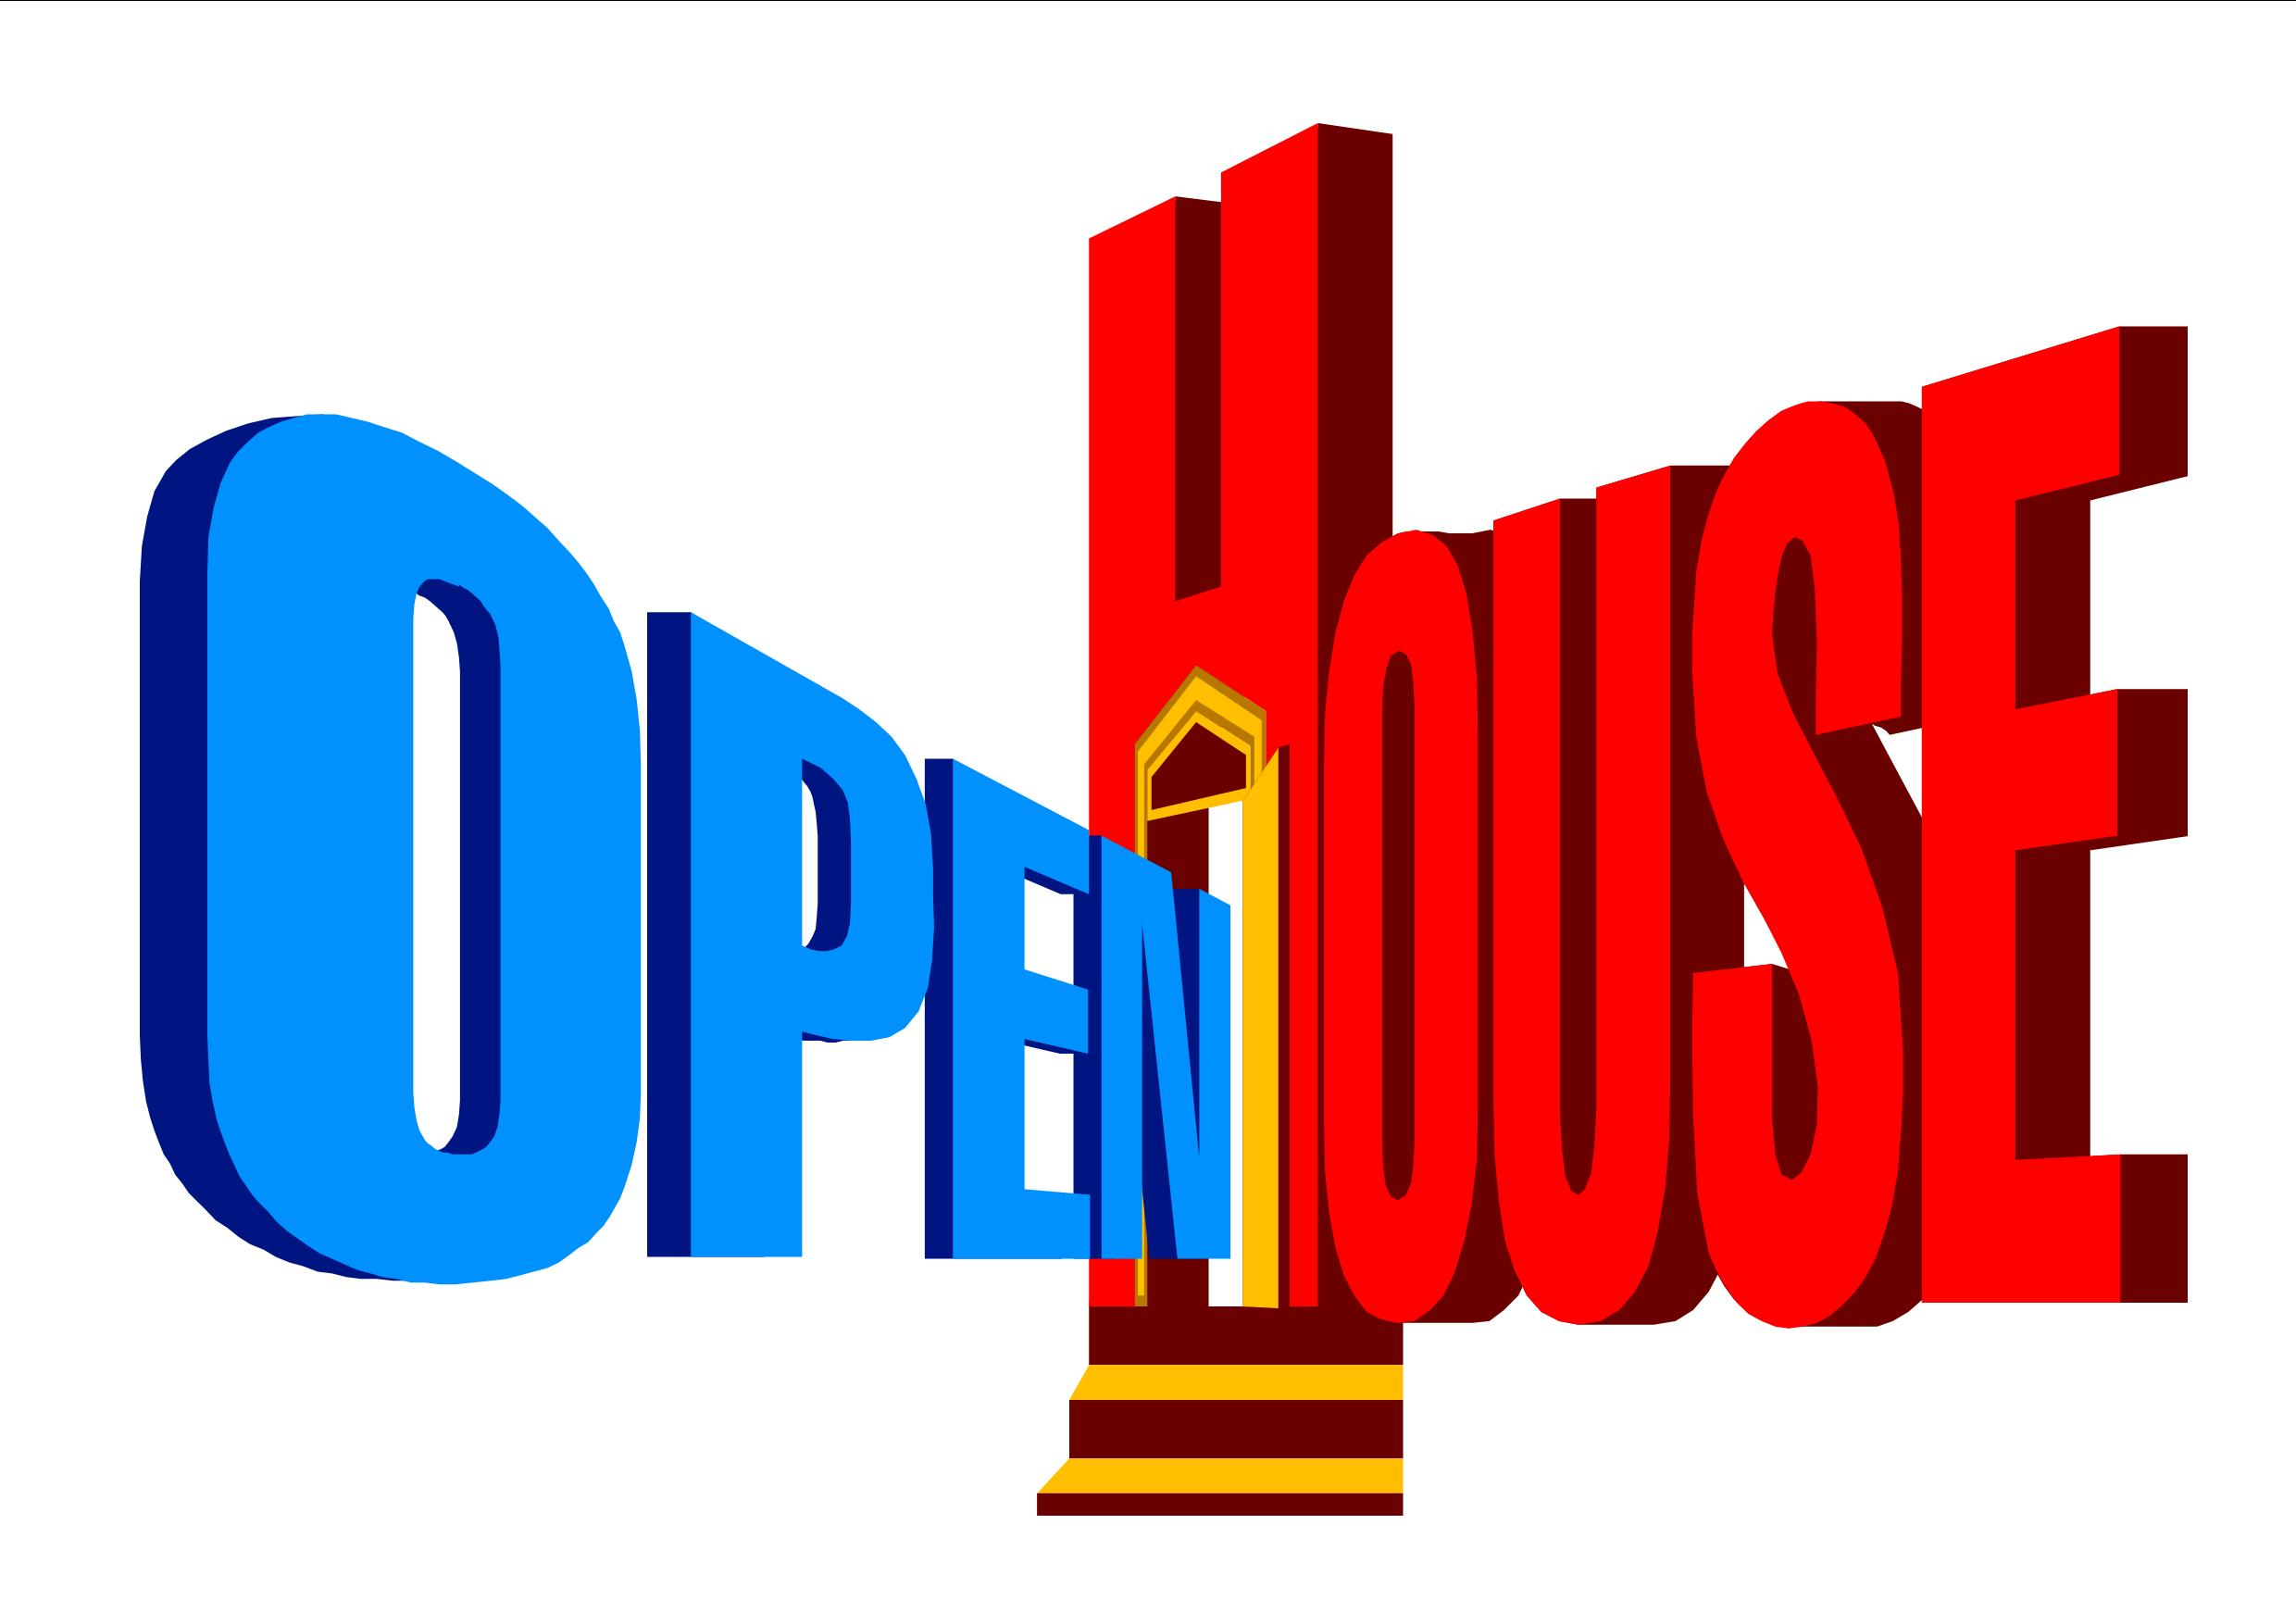 Church clipart open house. Time trish belford realty